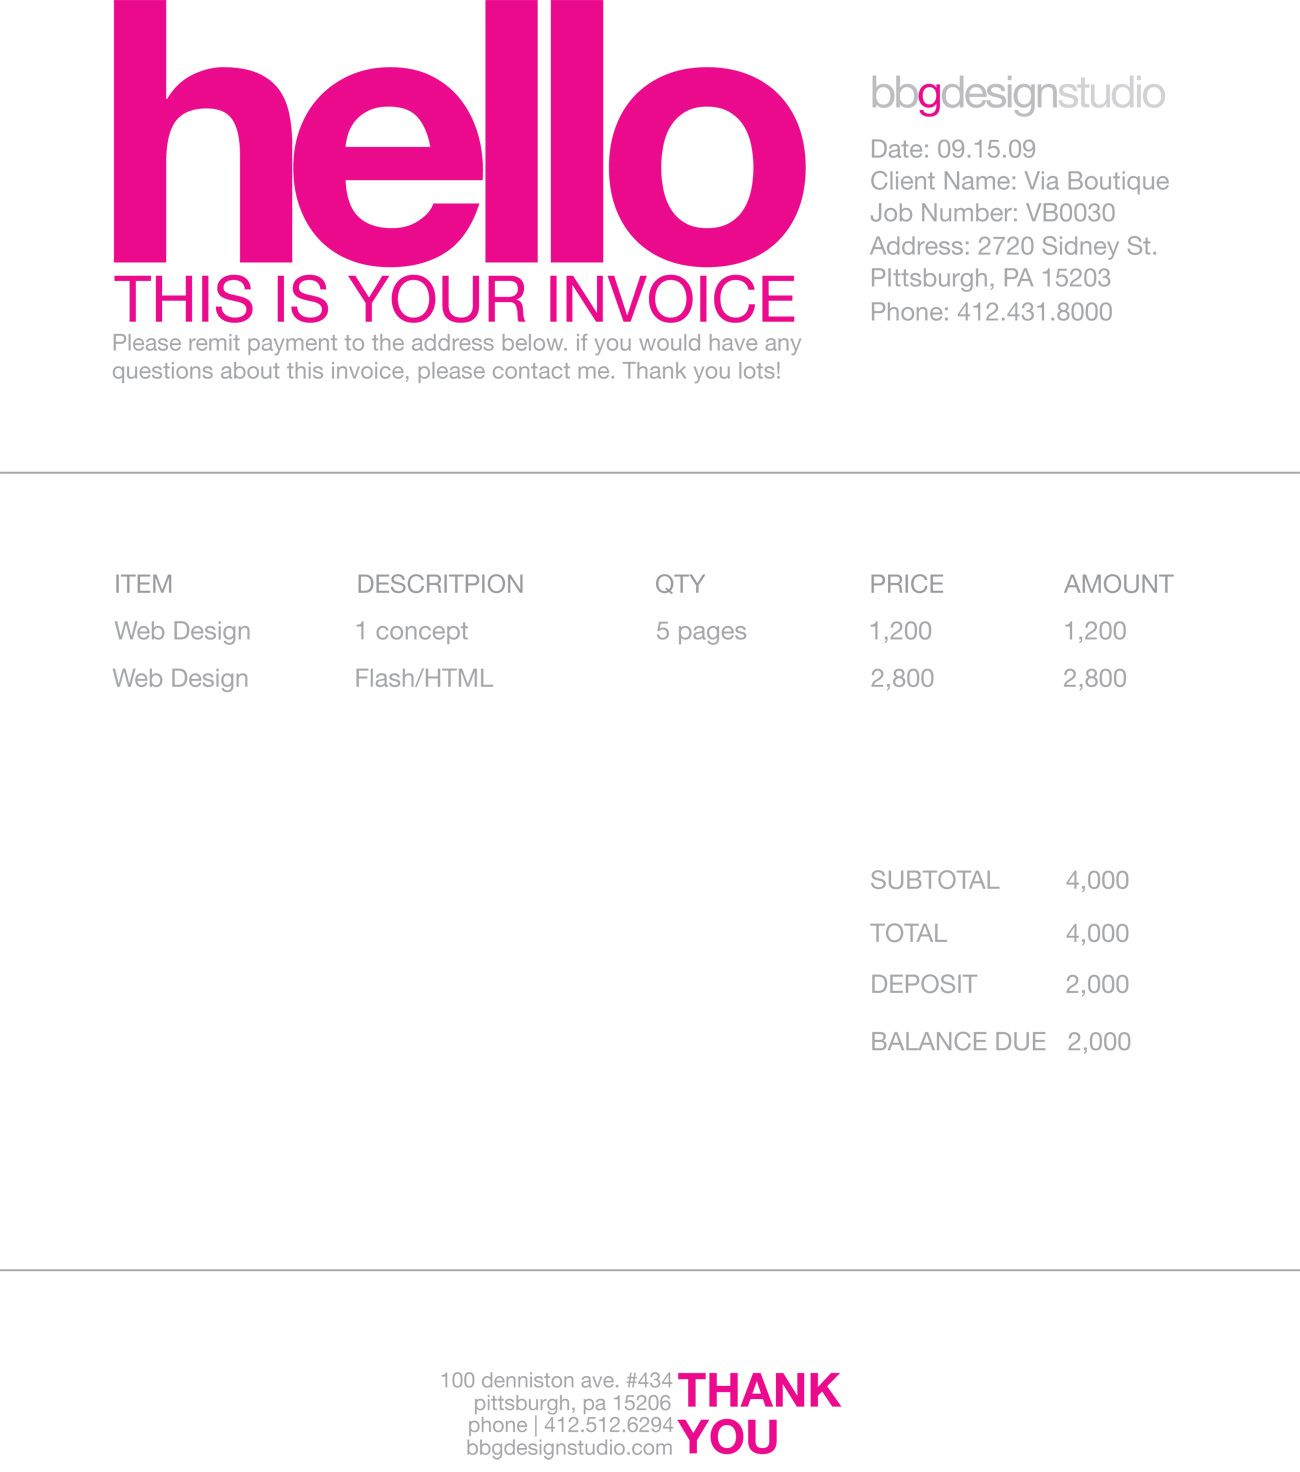 Coolmathgamesus  Pleasant  Images About Invoice Design On Pinterest With Glamorous Target Returns Without A Receipt Besides Cash Receipt Book Furthermore Macy Return Policy No Receipt With Breathtaking Global Depository Receipts Also Macys Return Policy Without Receipt In Addition Orange County Business Tax Receipt And Uscis Receipt Number Status As Well As Free Printable Rent Receipts Additionally Receipt Lil Wayne From Pinterestcom With Coolmathgamesus  Glamorous  Images About Invoice Design On Pinterest With Breathtaking Target Returns Without A Receipt Besides Cash Receipt Book Furthermore Macy Return Policy No Receipt And Pleasant Global Depository Receipts Also Macys Return Policy Without Receipt In Addition Orange County Business Tax Receipt From Pinterestcom